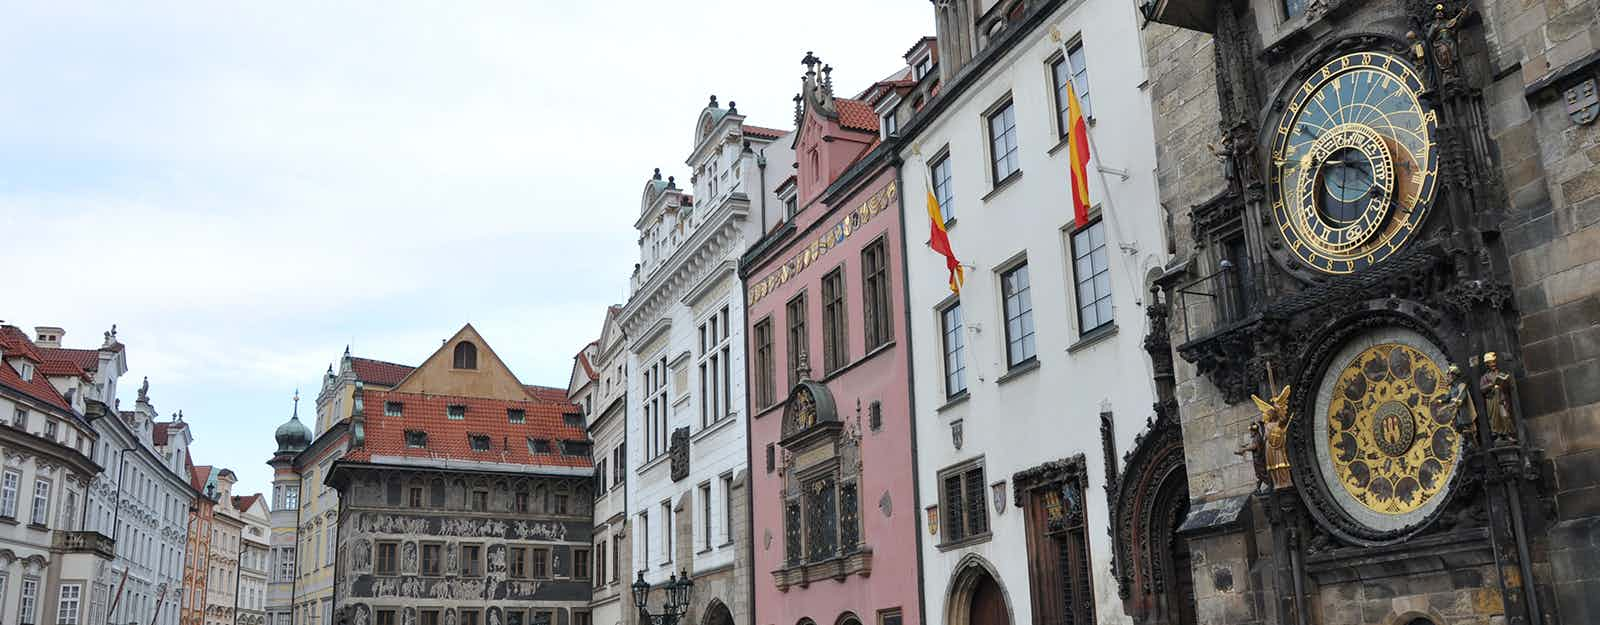 Walking Tour of Old Town and Jewish Quarter